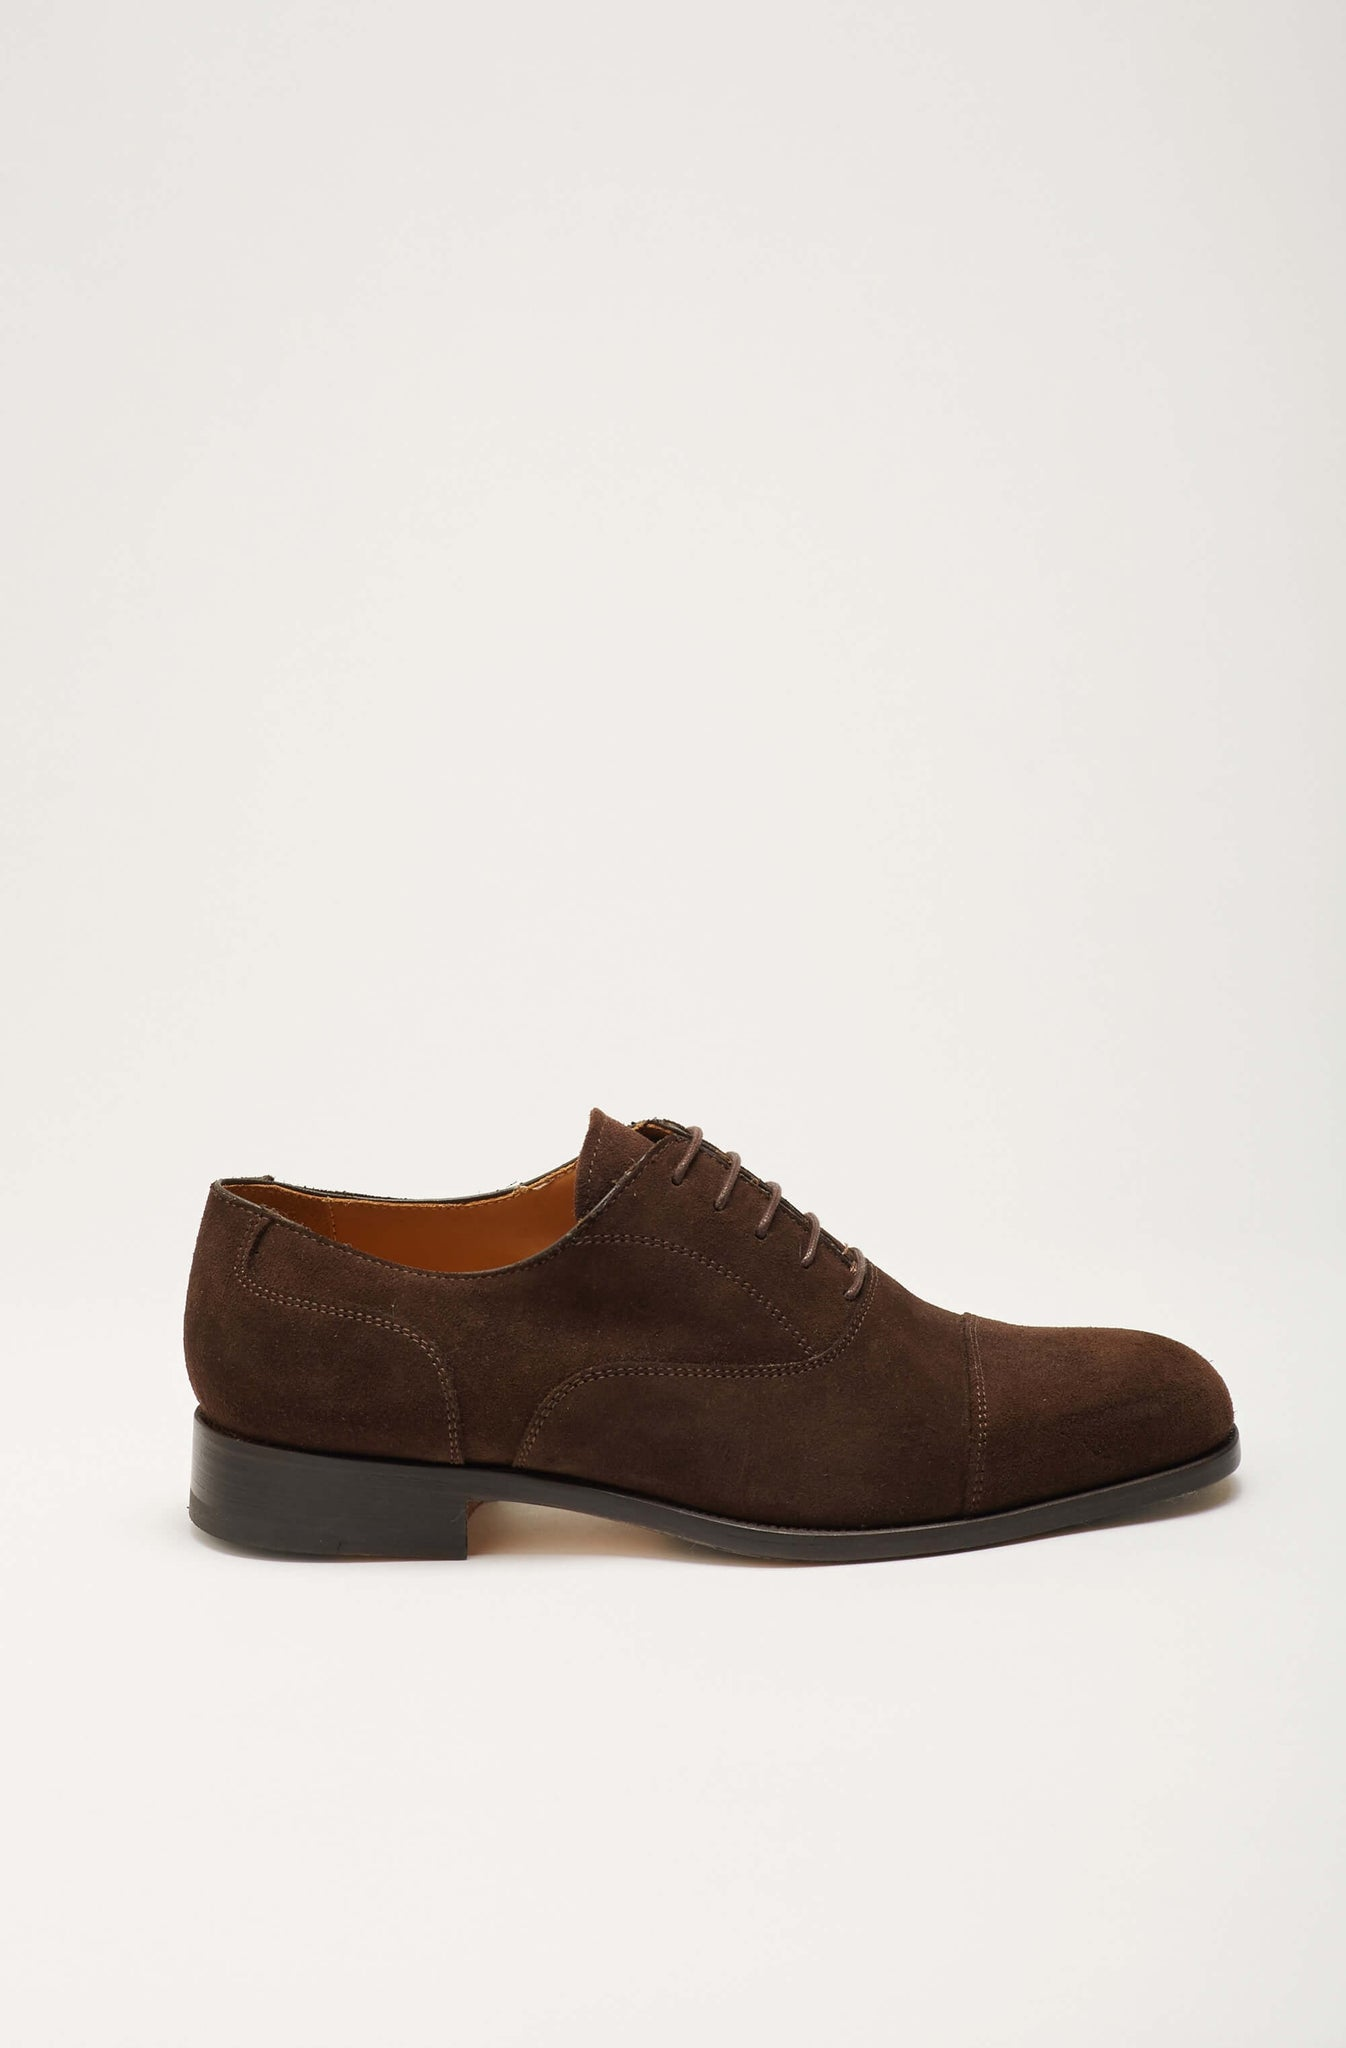 Zapato Oxford Ante Marrón Oscuro